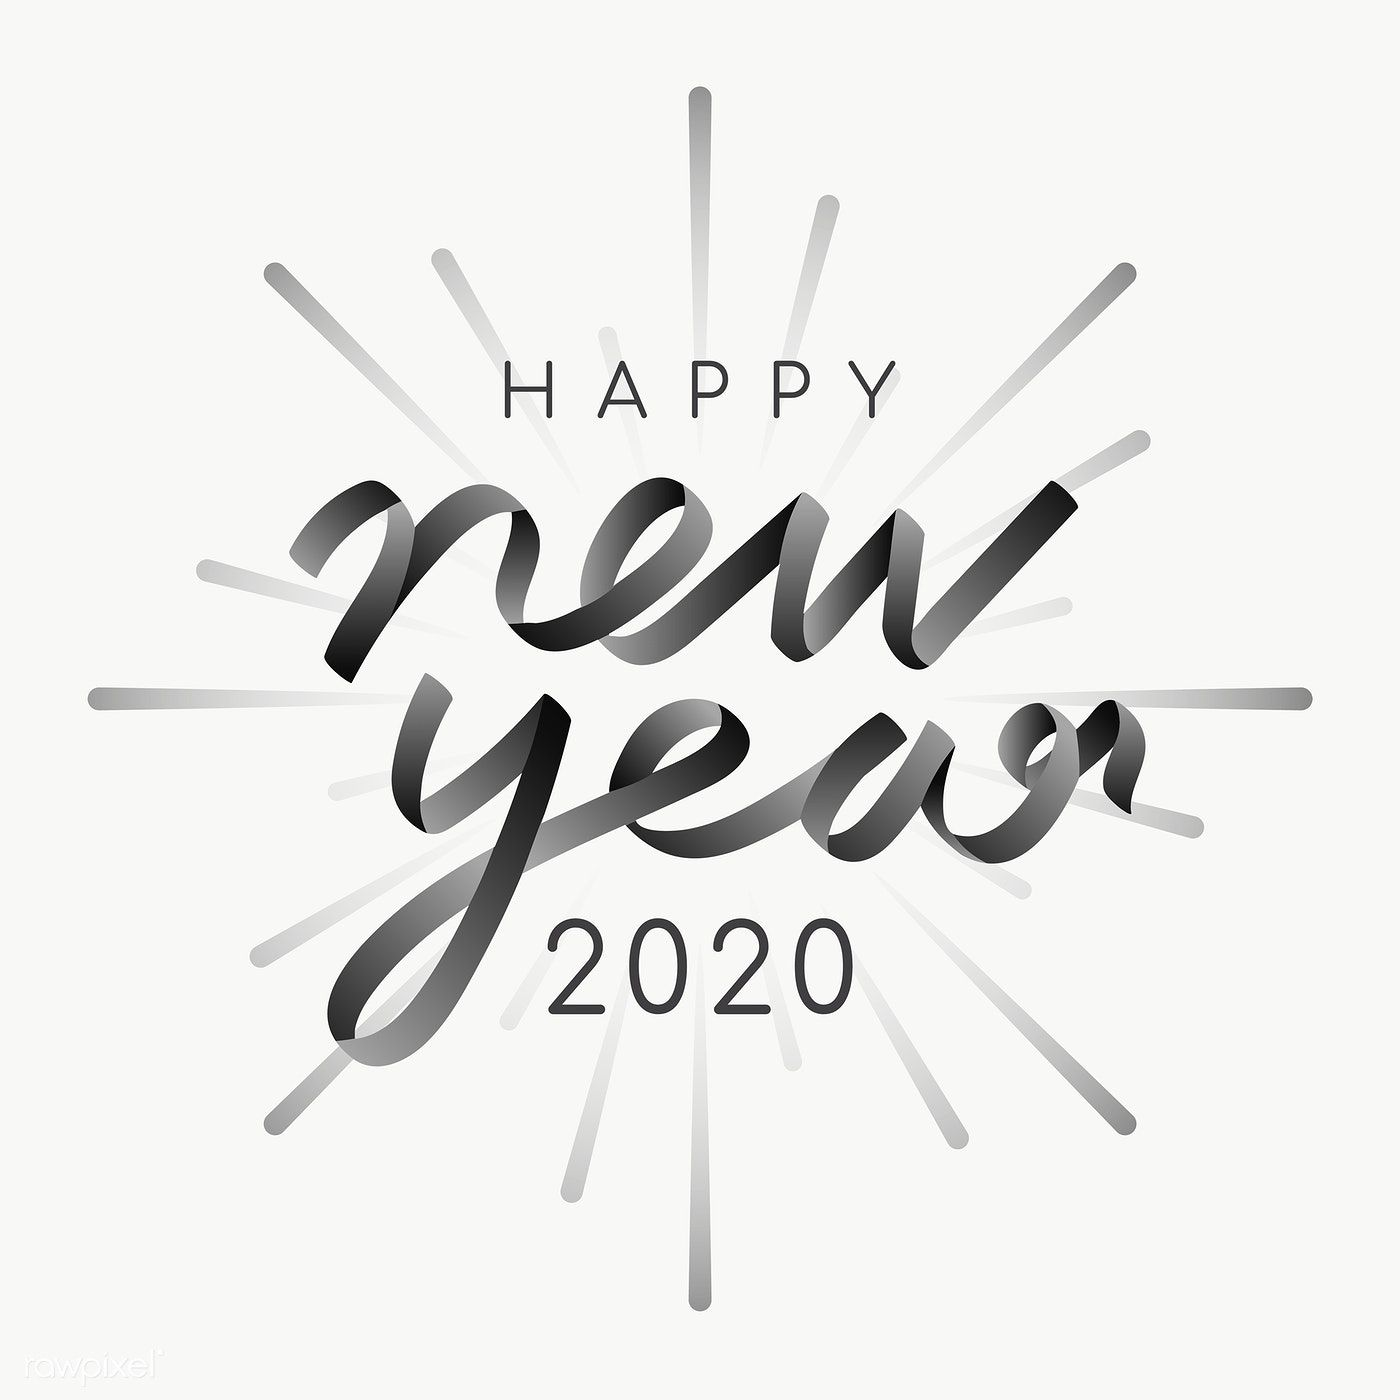 Happy New Year 2020 Transparent Png Free Image By Rawpixel Com